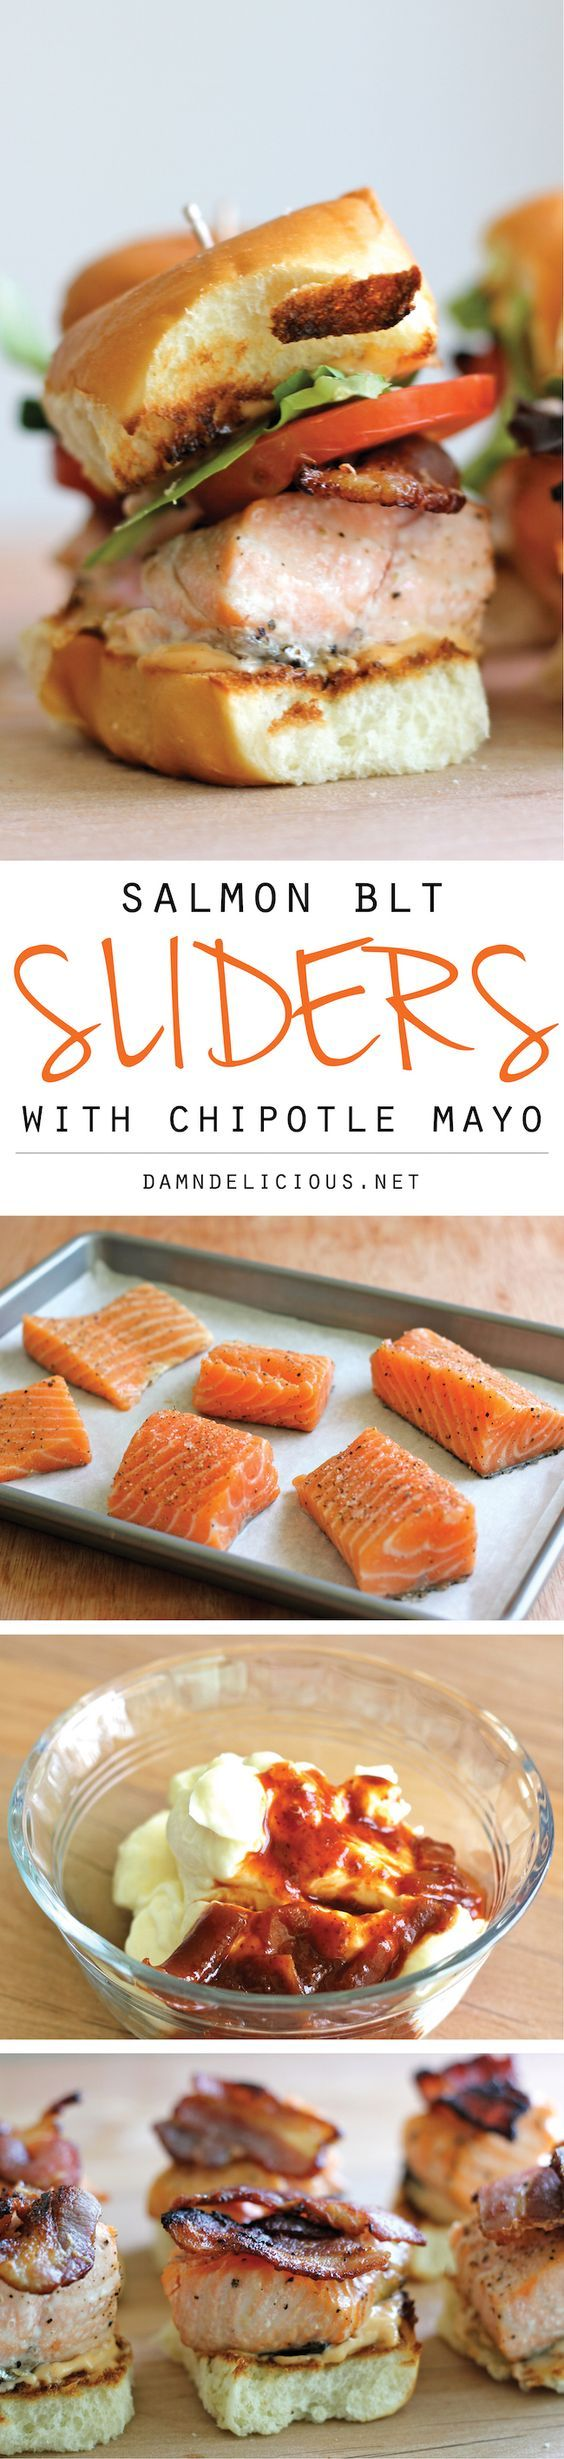 Salmon BLT Sliders Recipe with Chipotle Mayo